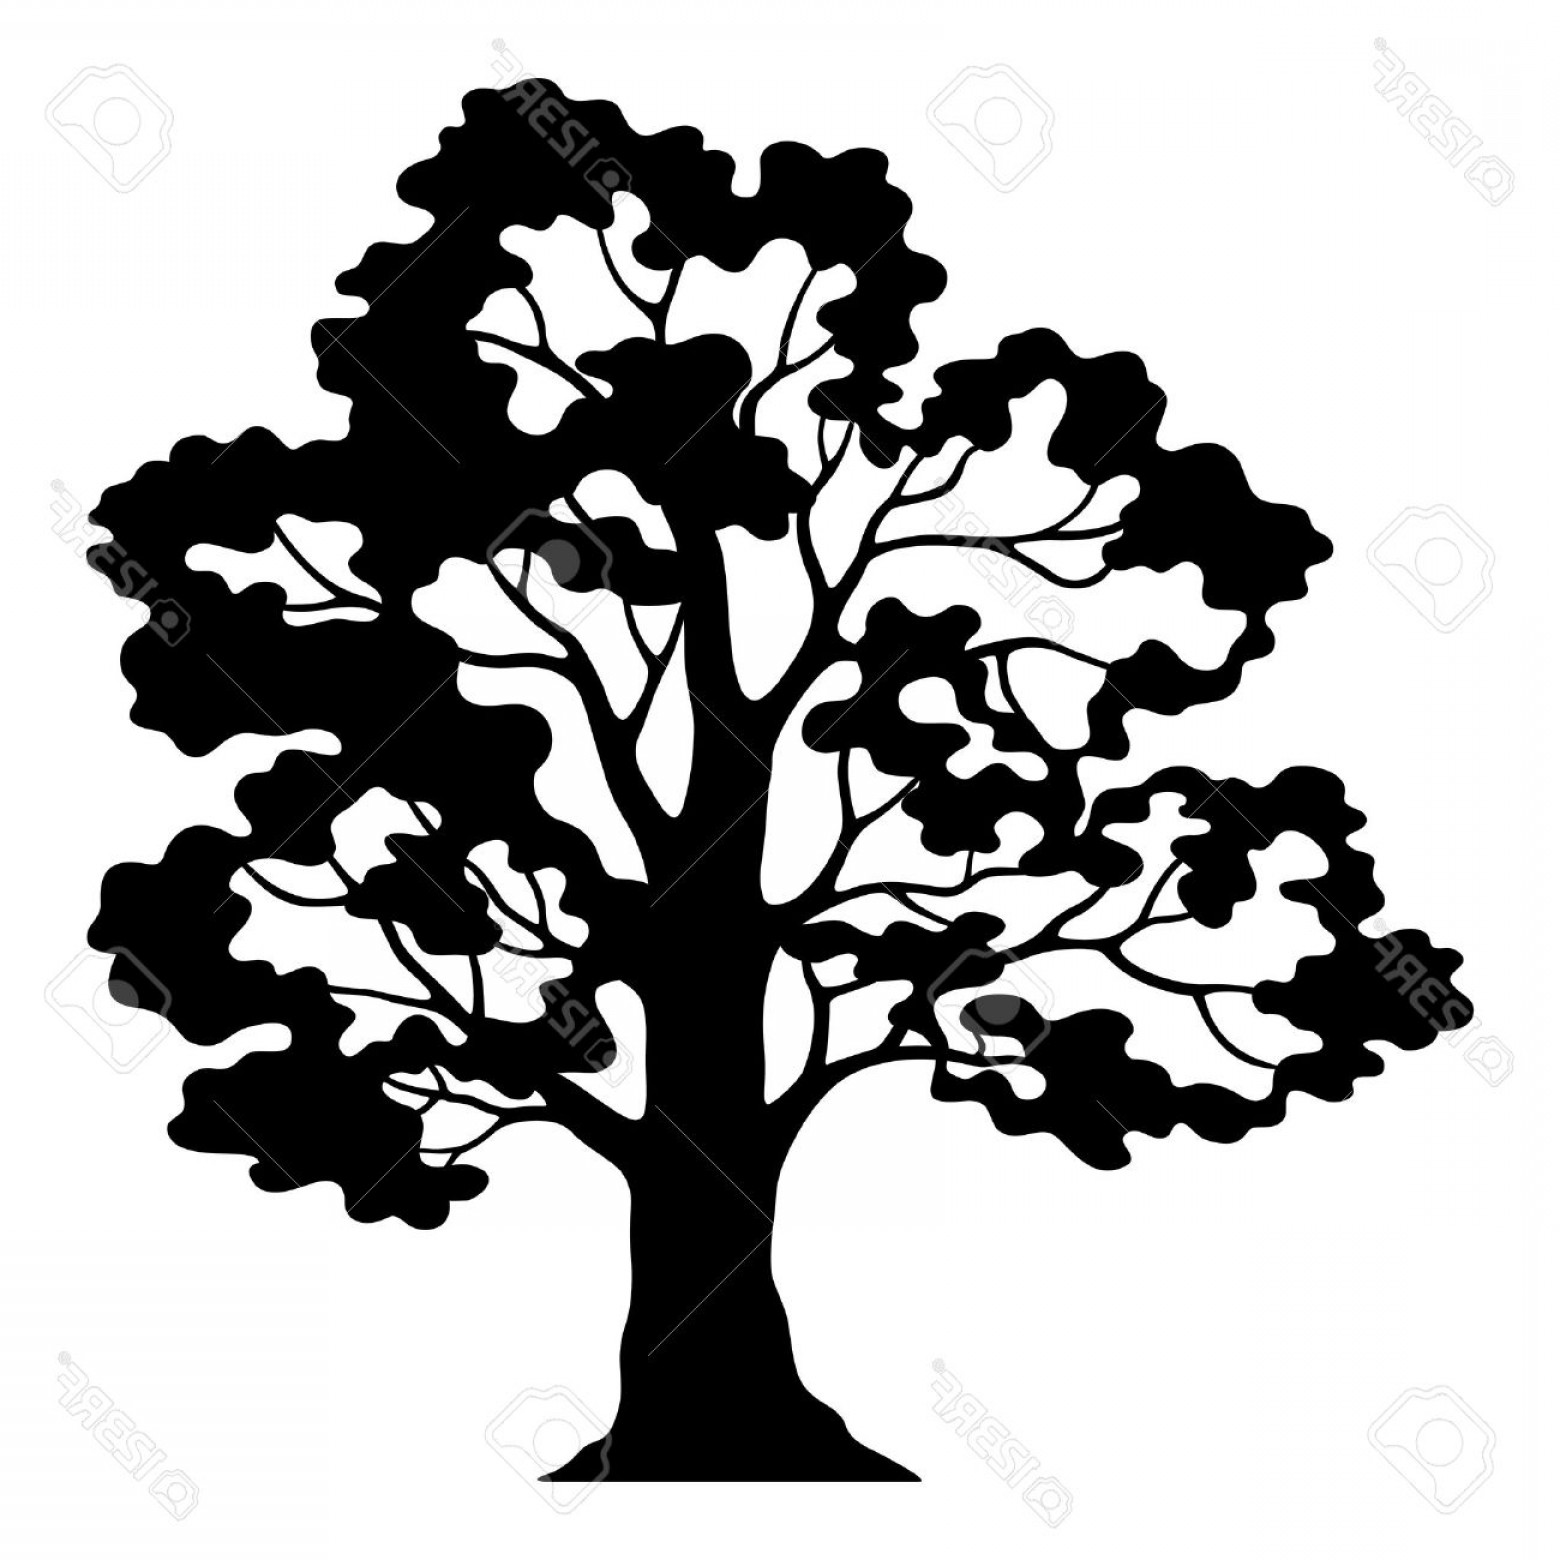 Oak Leaf Vector Clip Art: Photostock Vector Oak Tree Pictogram Black Silhouette And Contours Isolated On White Background Vector